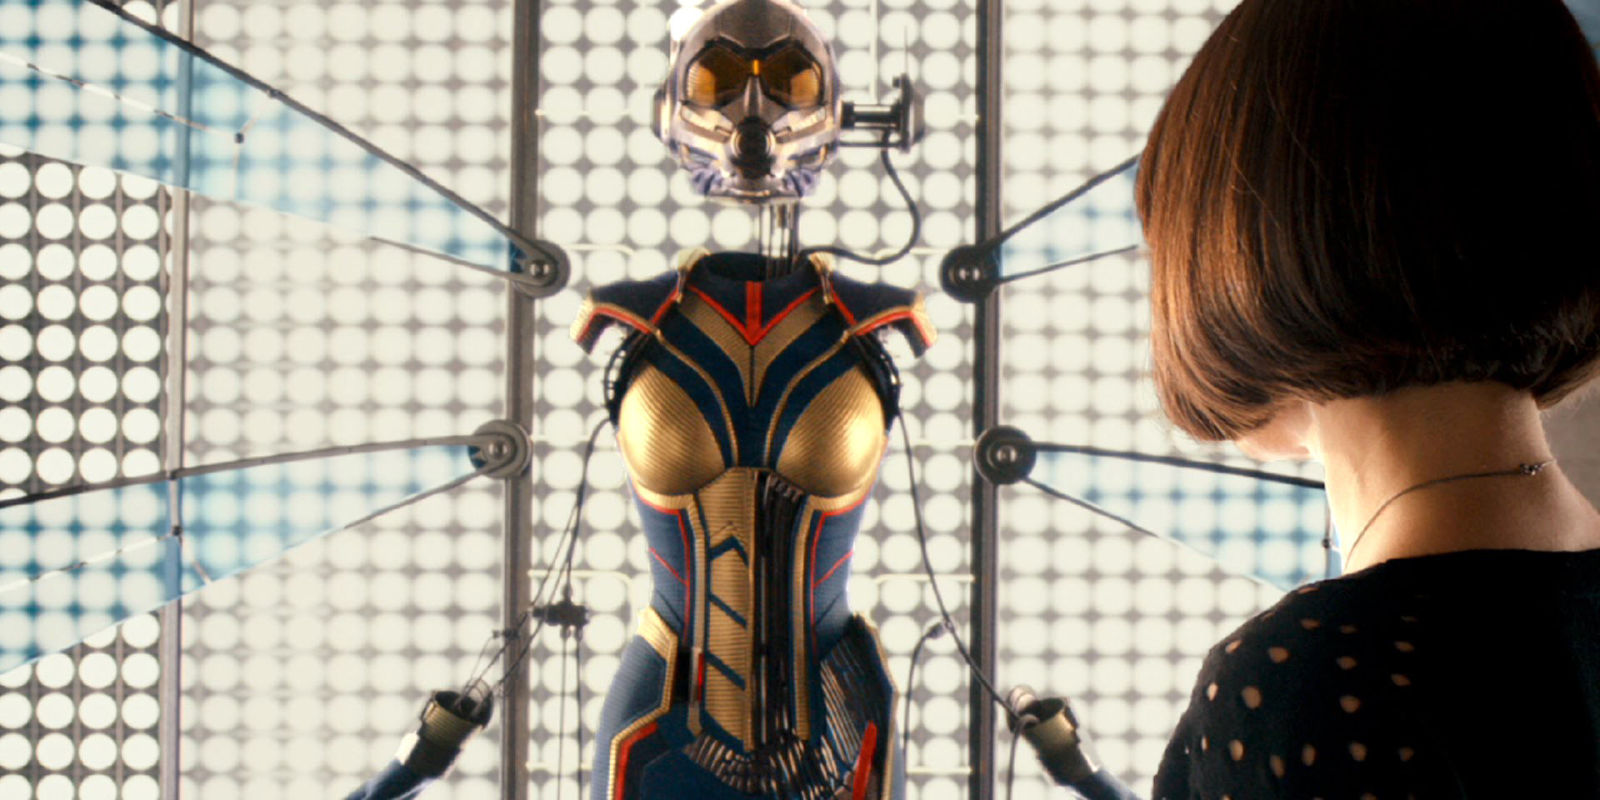 SDCC 2017: Michelle Pfeiffer Joins the Cast in Ant-Man and The Wasp